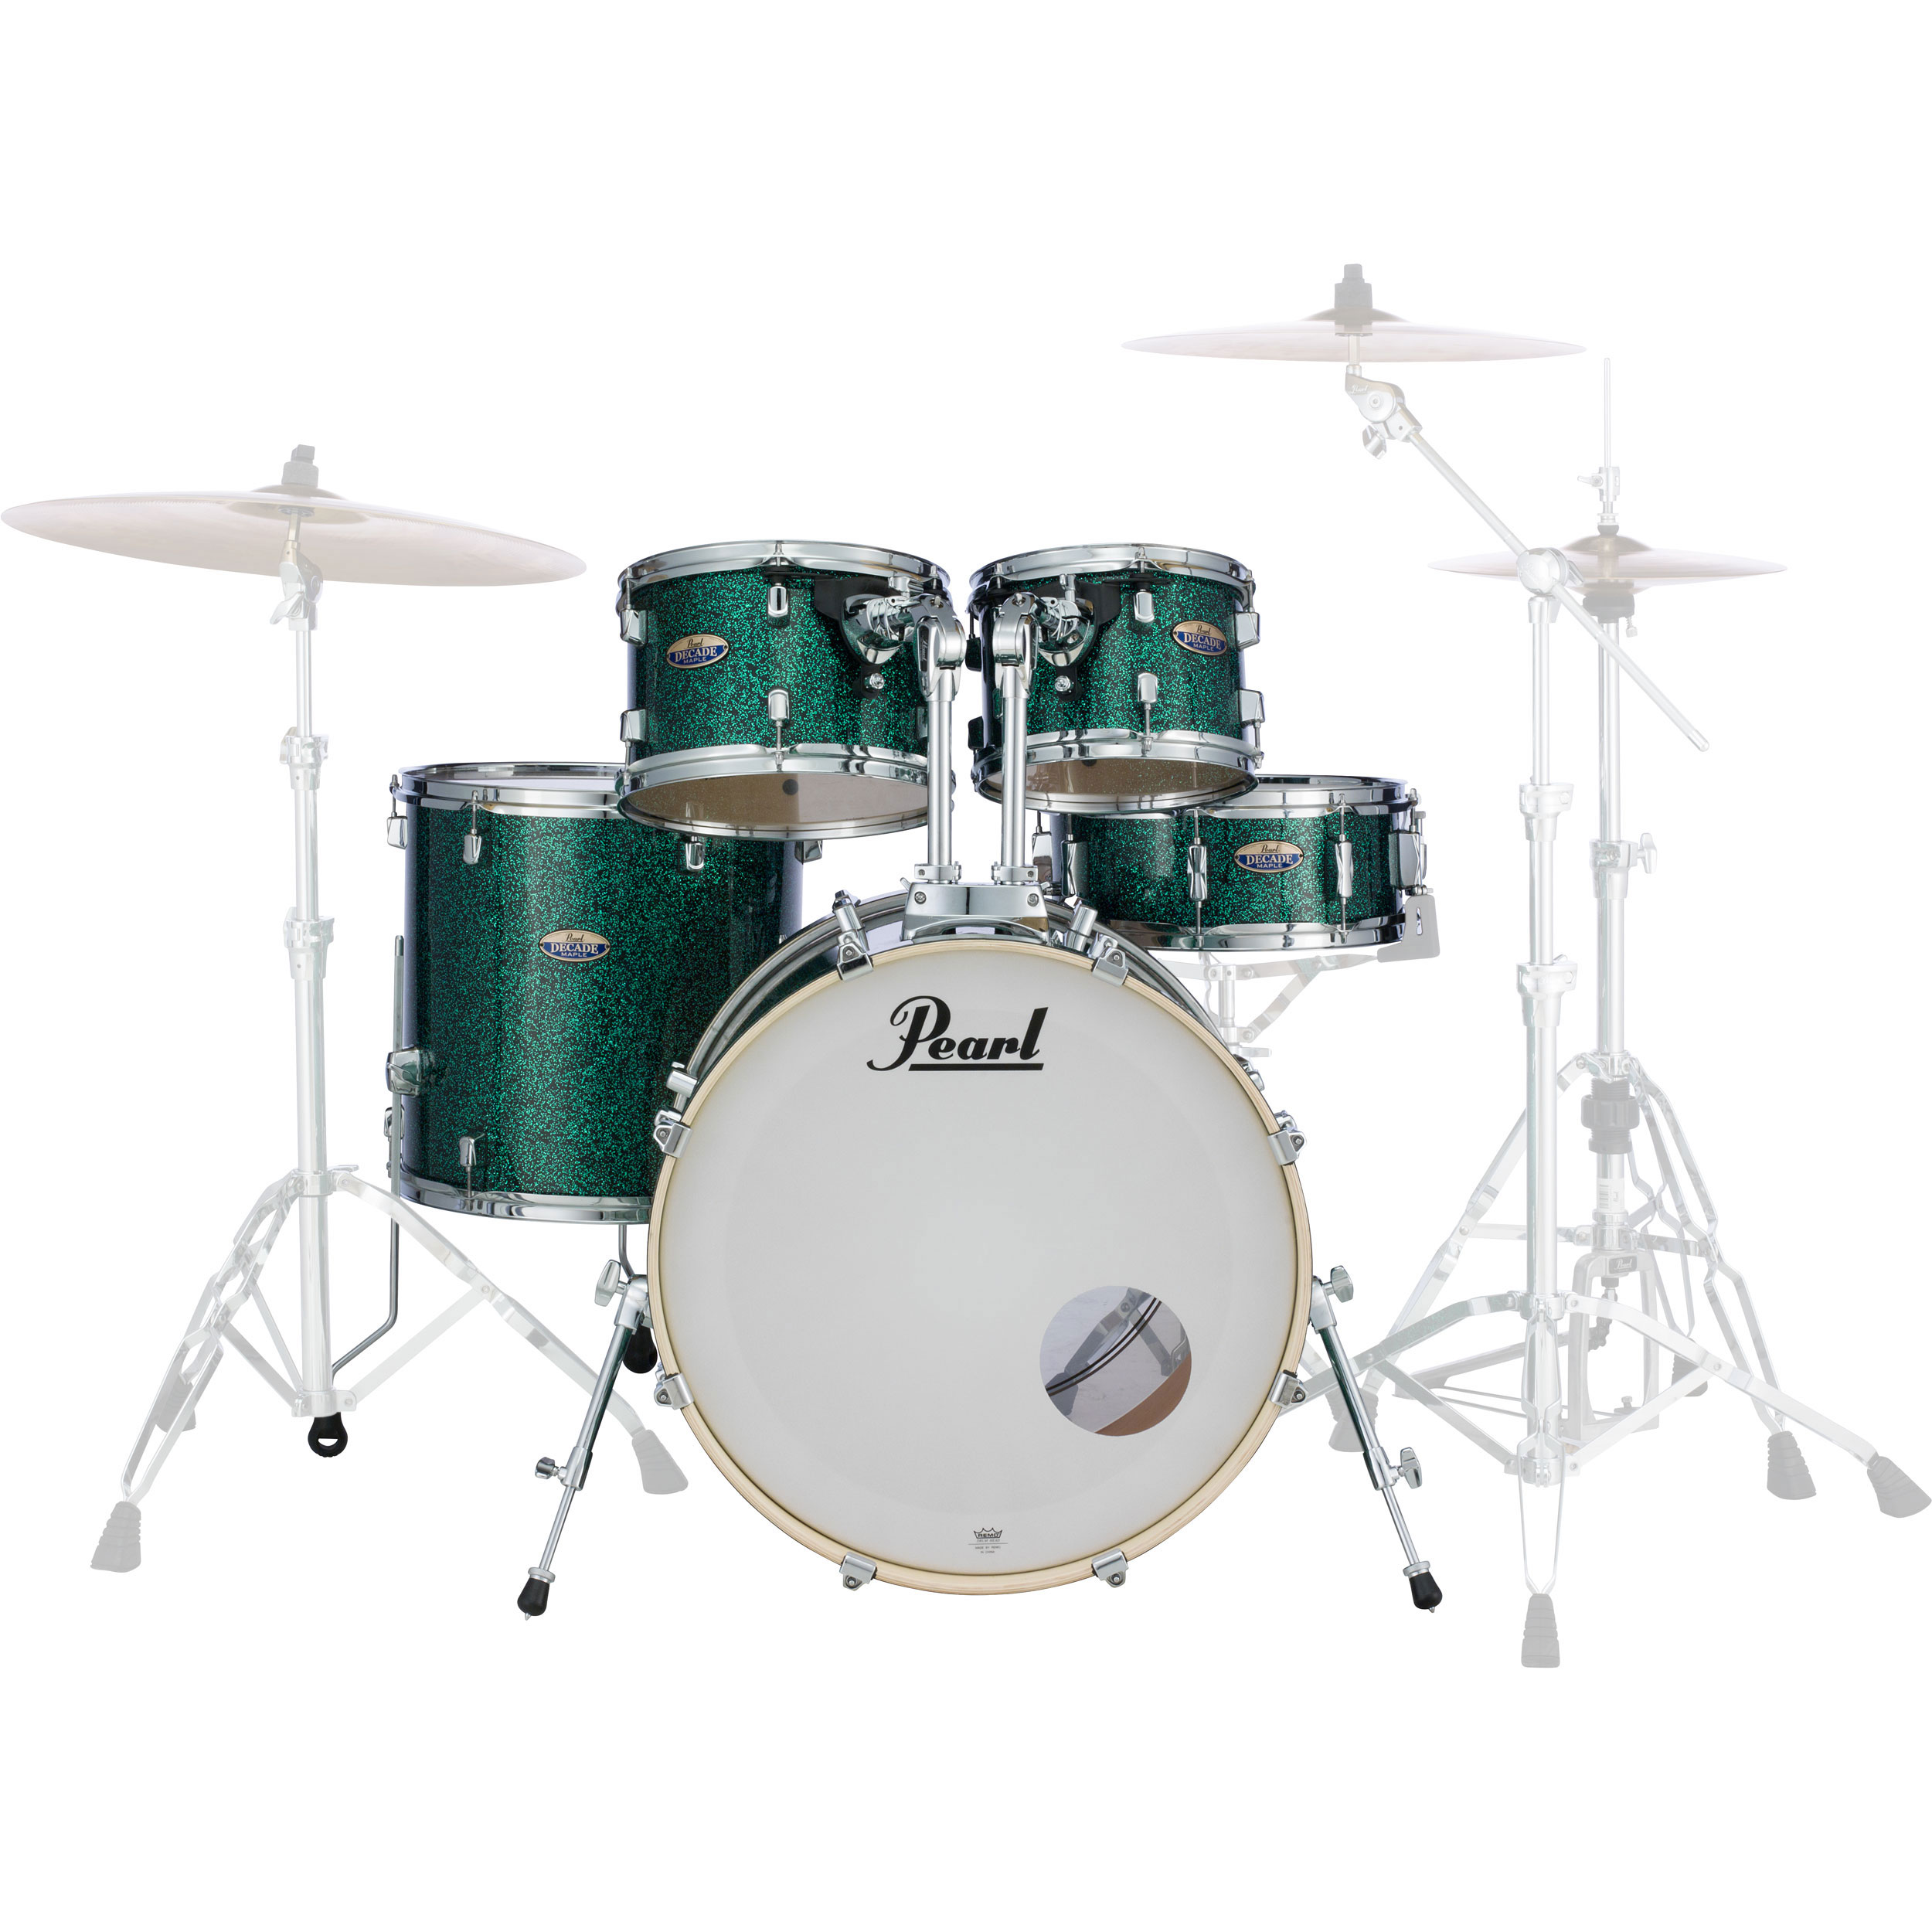 pearl decade maple 5 piece drum set shell pack 22 bass 10 12 16 toms 14 snare in wrap finish. Black Bedroom Furniture Sets. Home Design Ideas